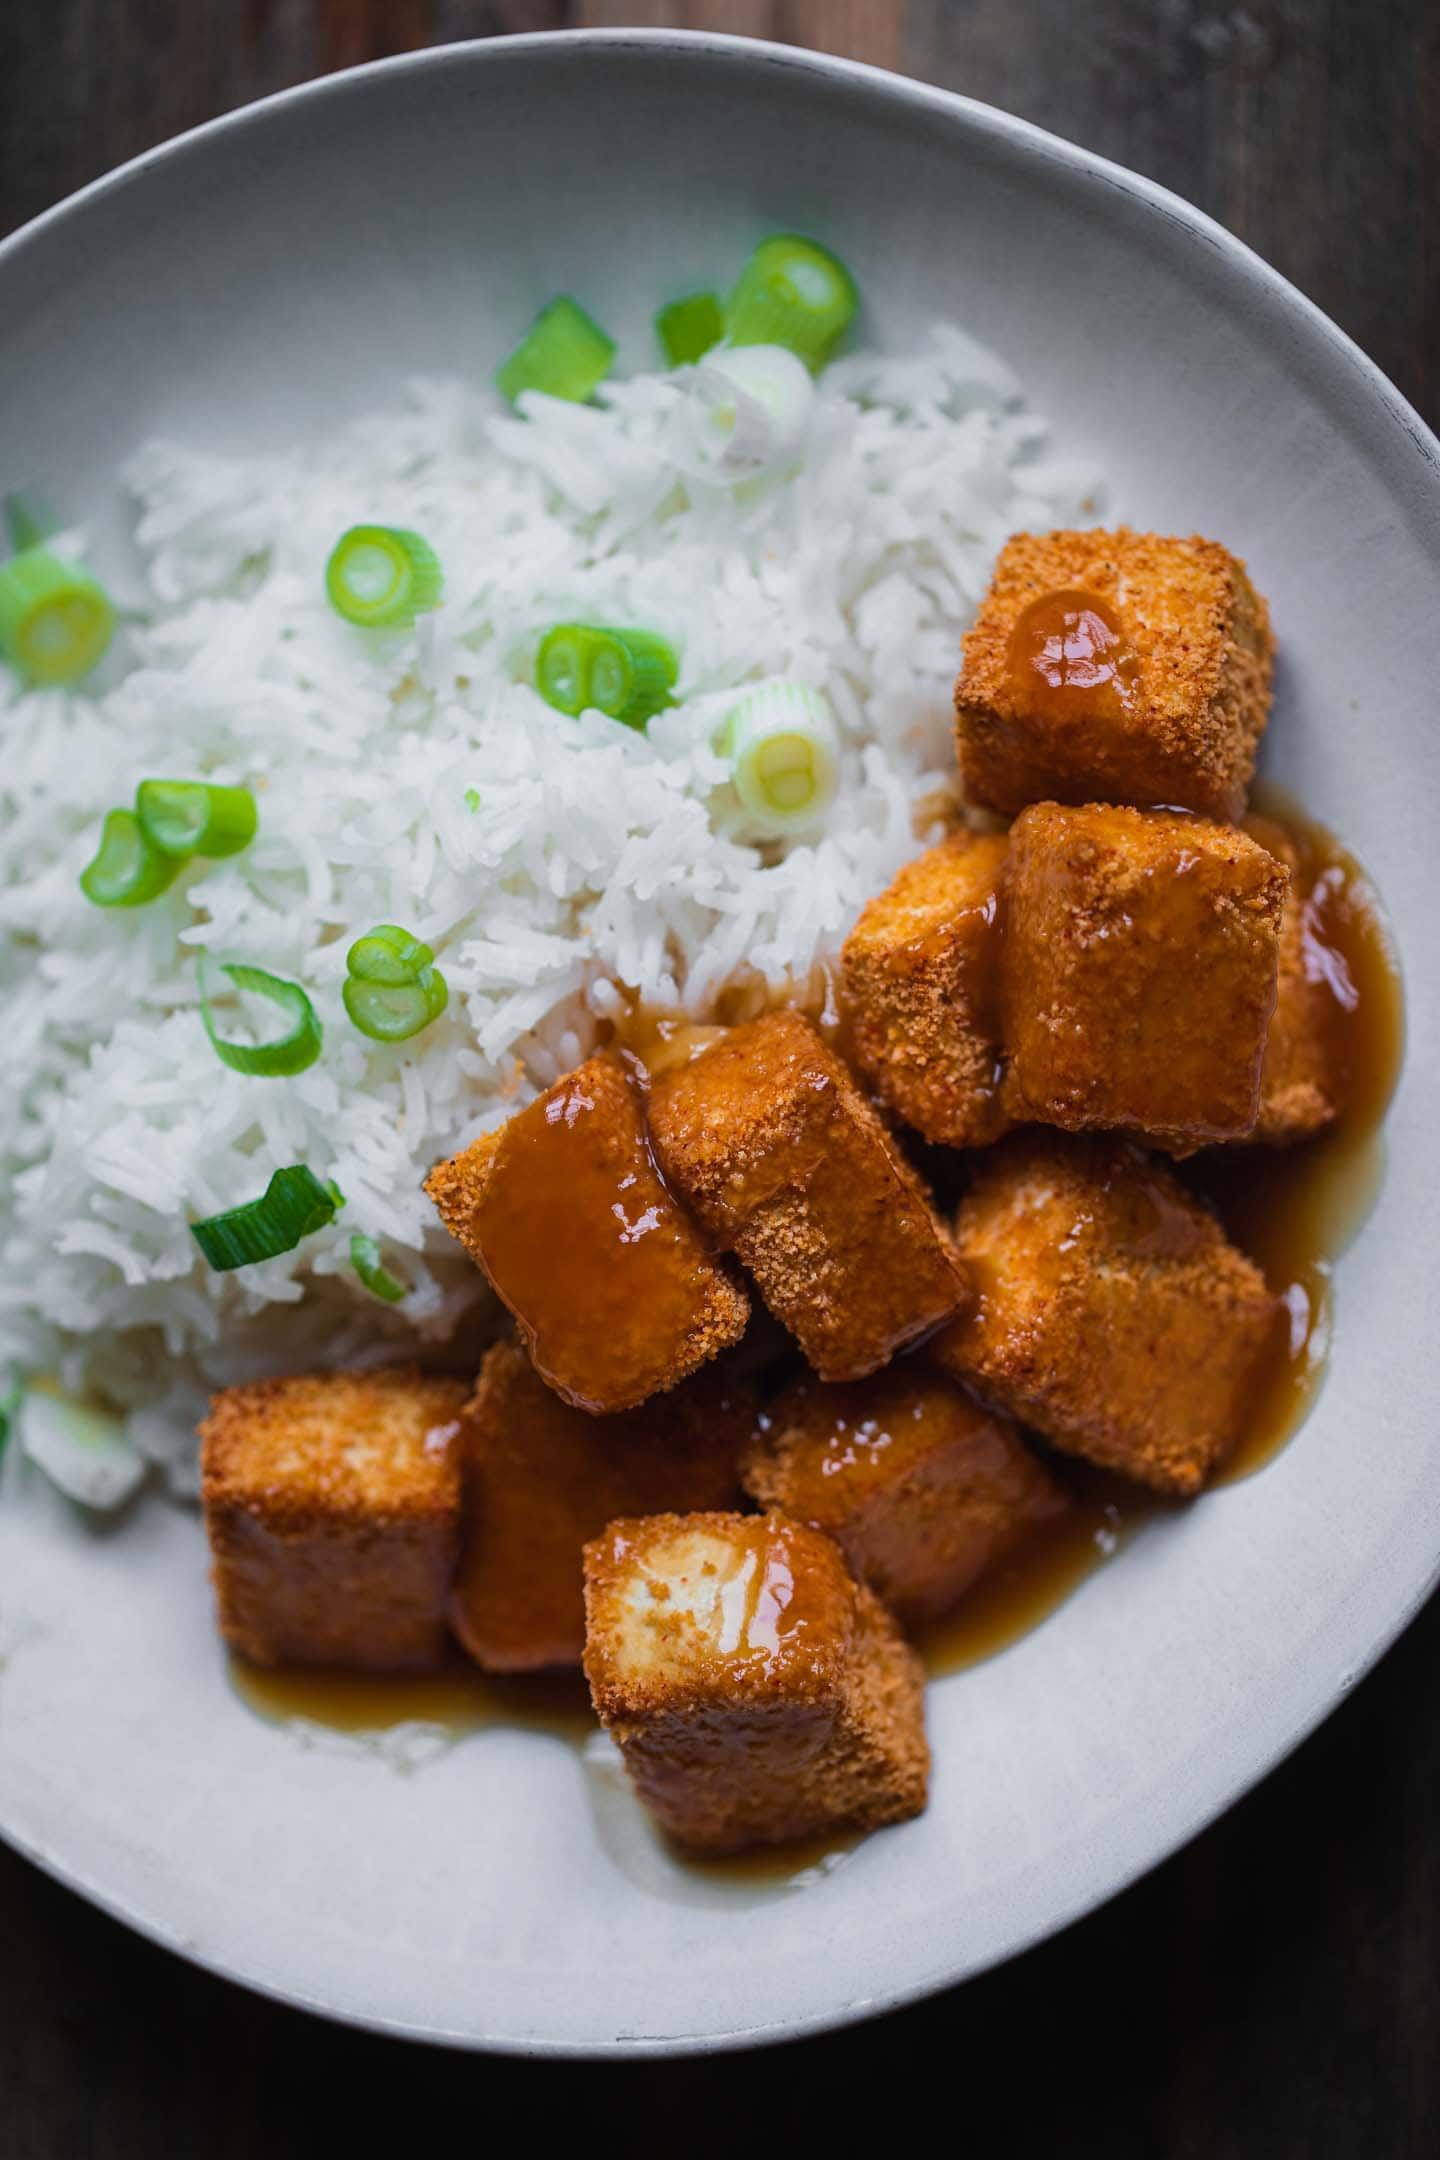 Crispy baked tofu with rice and a sweet and sour sauce